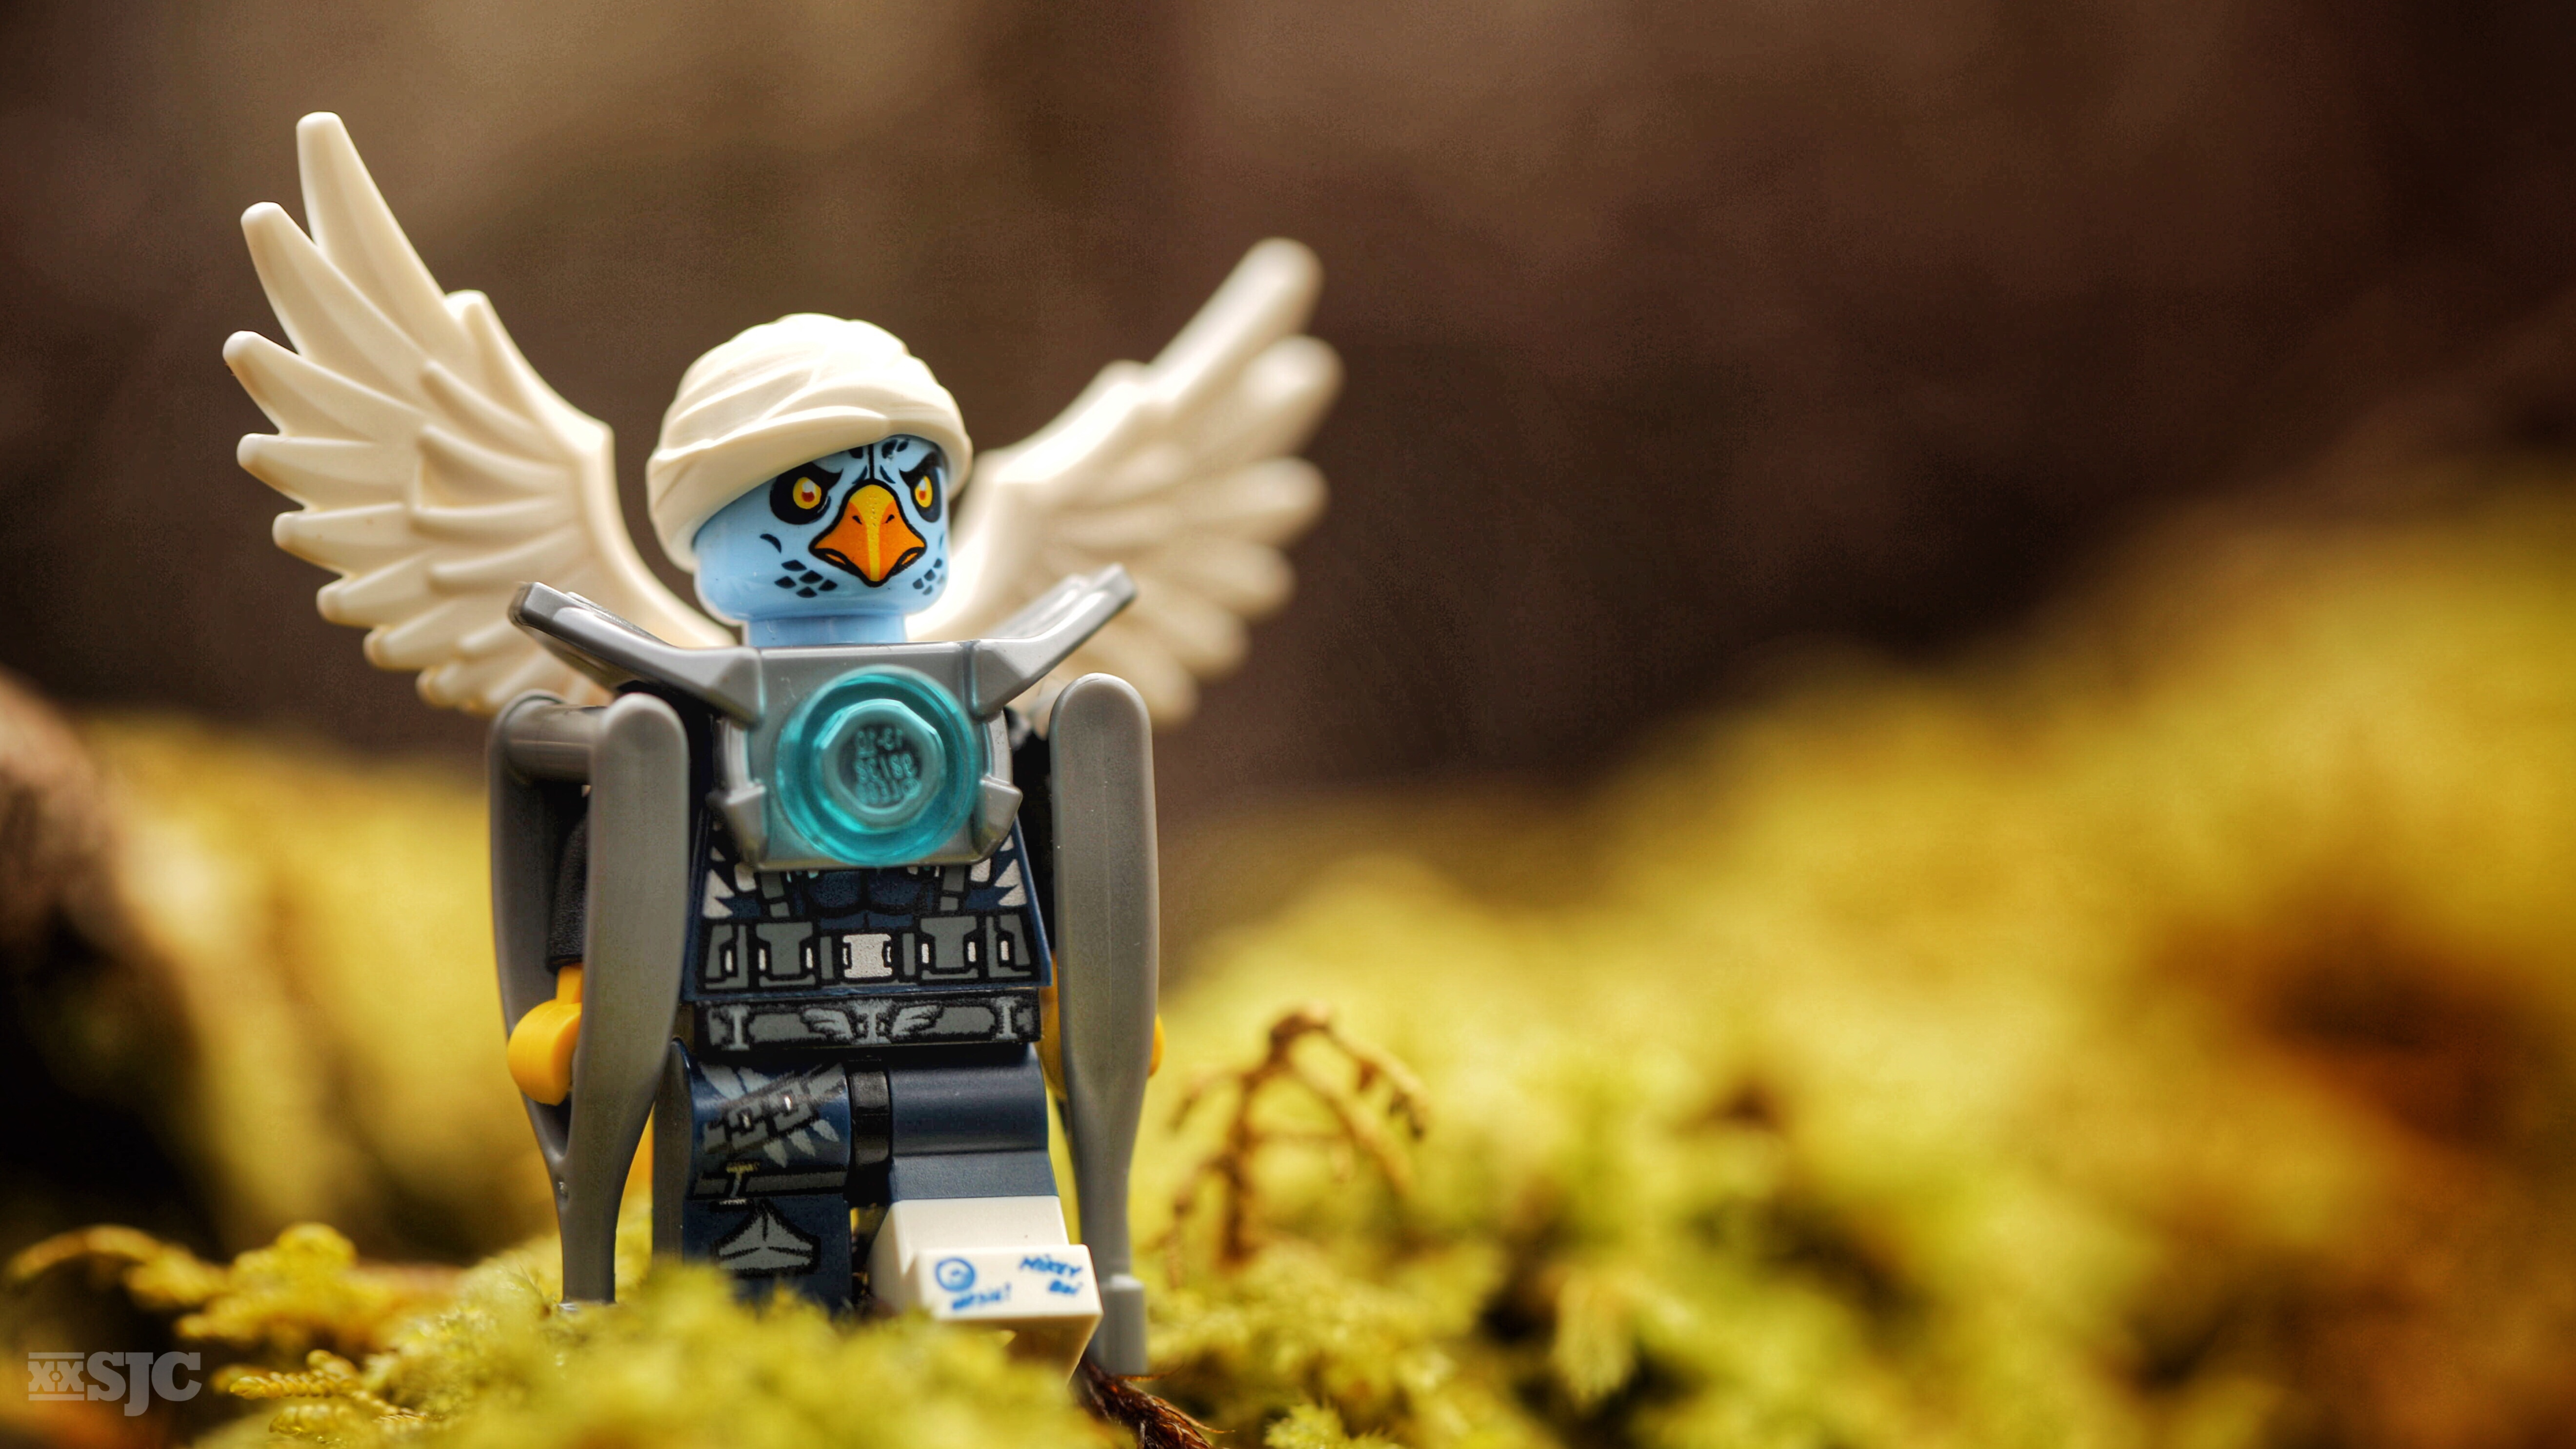 A LEGO Chima bird stands with the help of crutches on a mossy branch. His head is bandaged and his foot is in a cast.